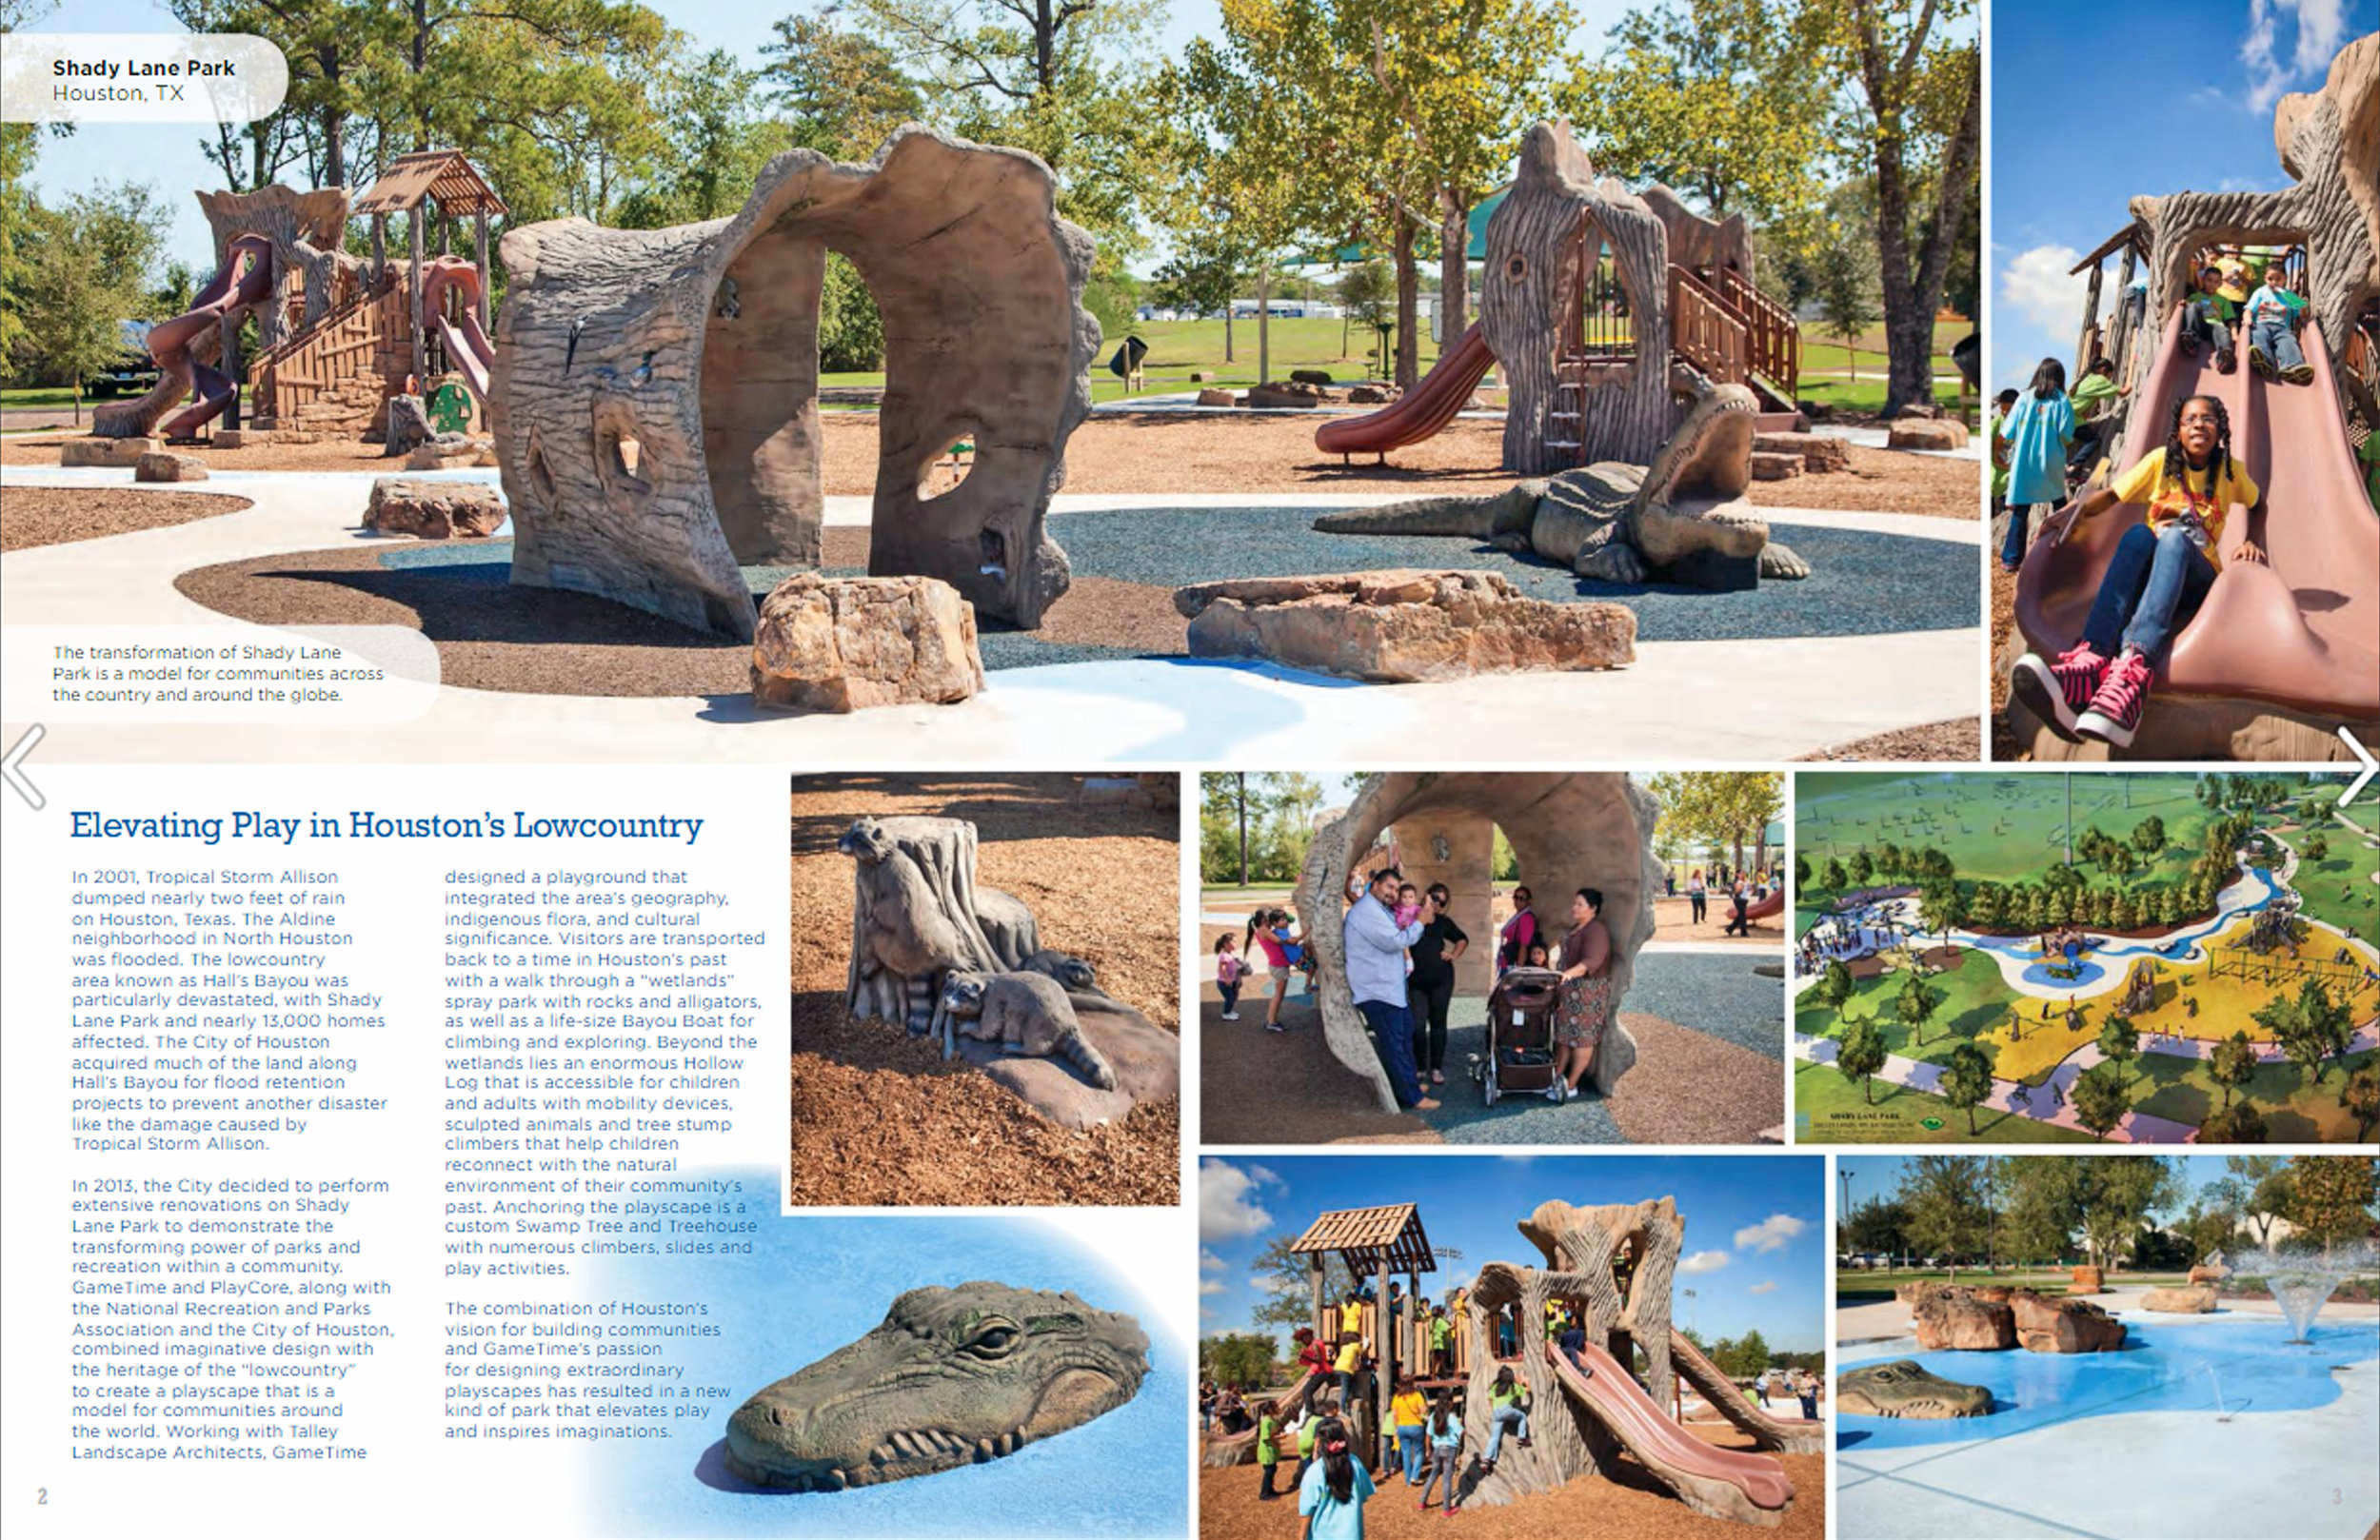 - TLA is happy to announce that the Shady Lane Park project was featured in GameTime's Catalogue.